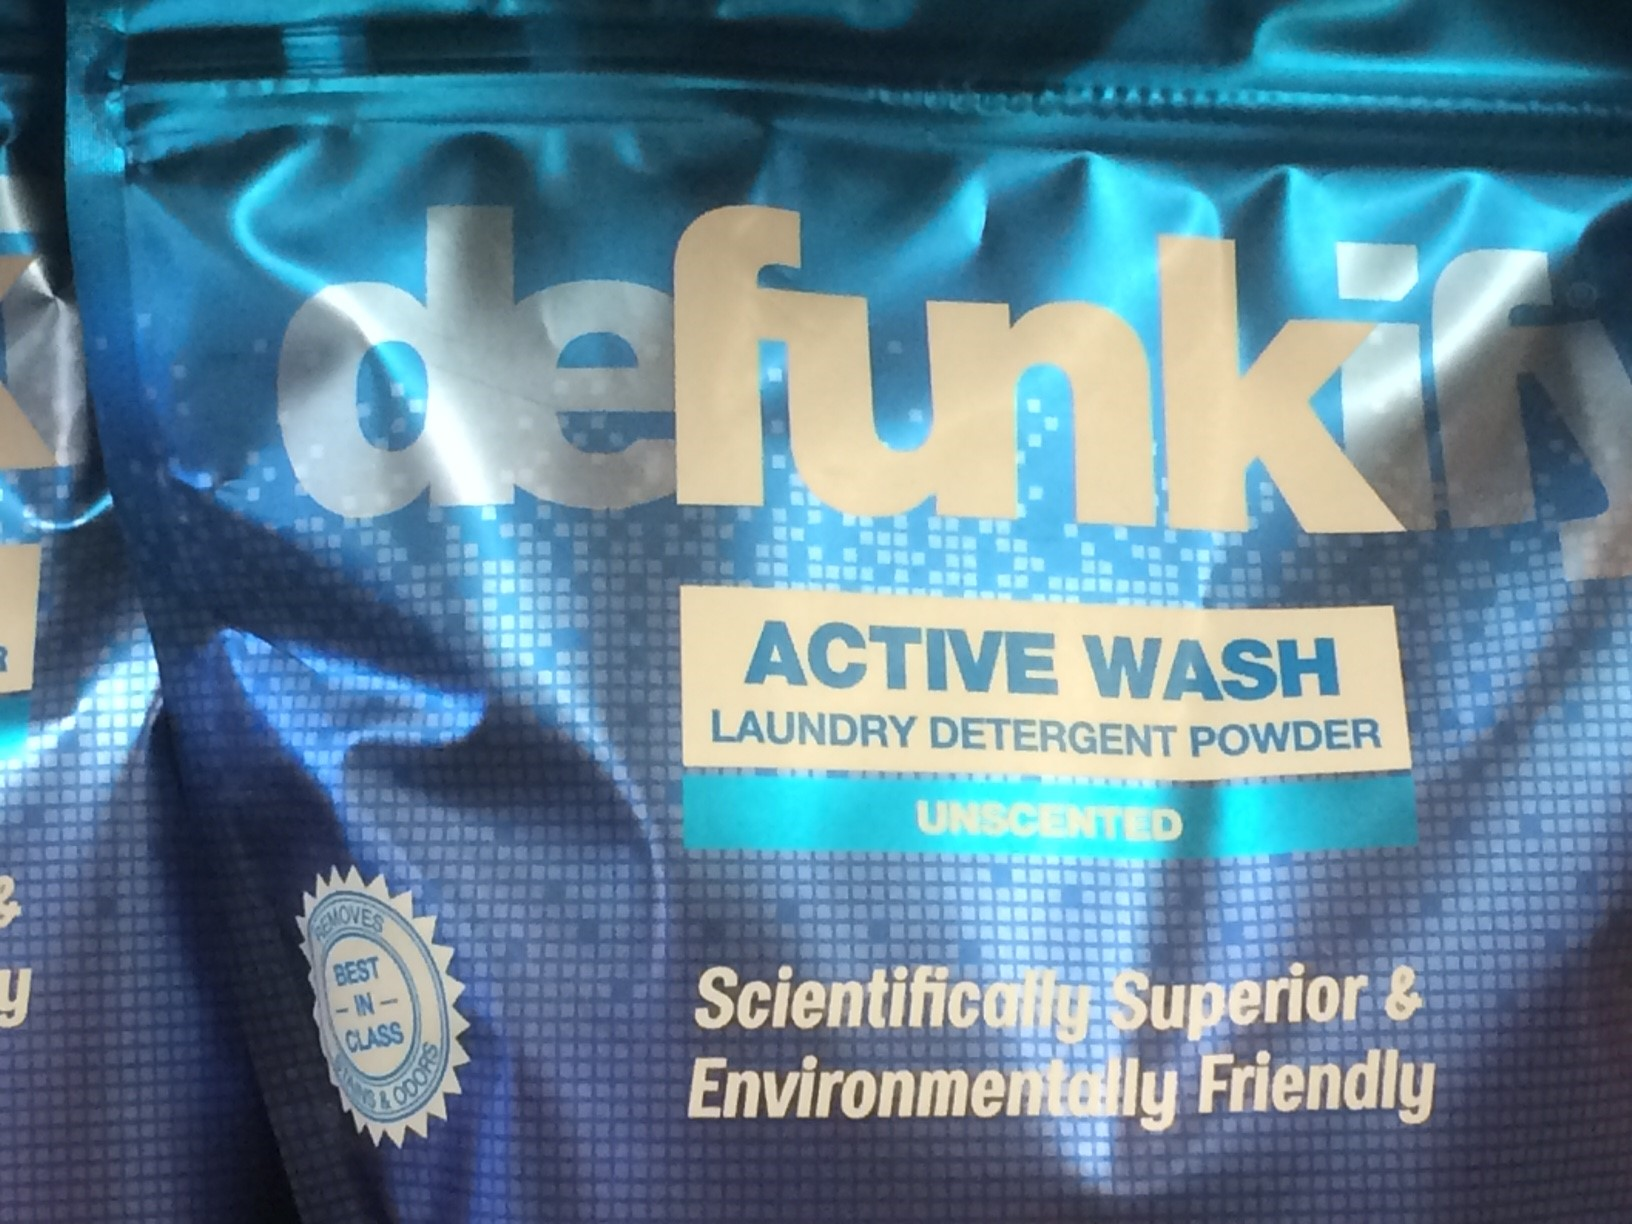 Defunkify, an Eco-friendly laundry detergent growing in popularity